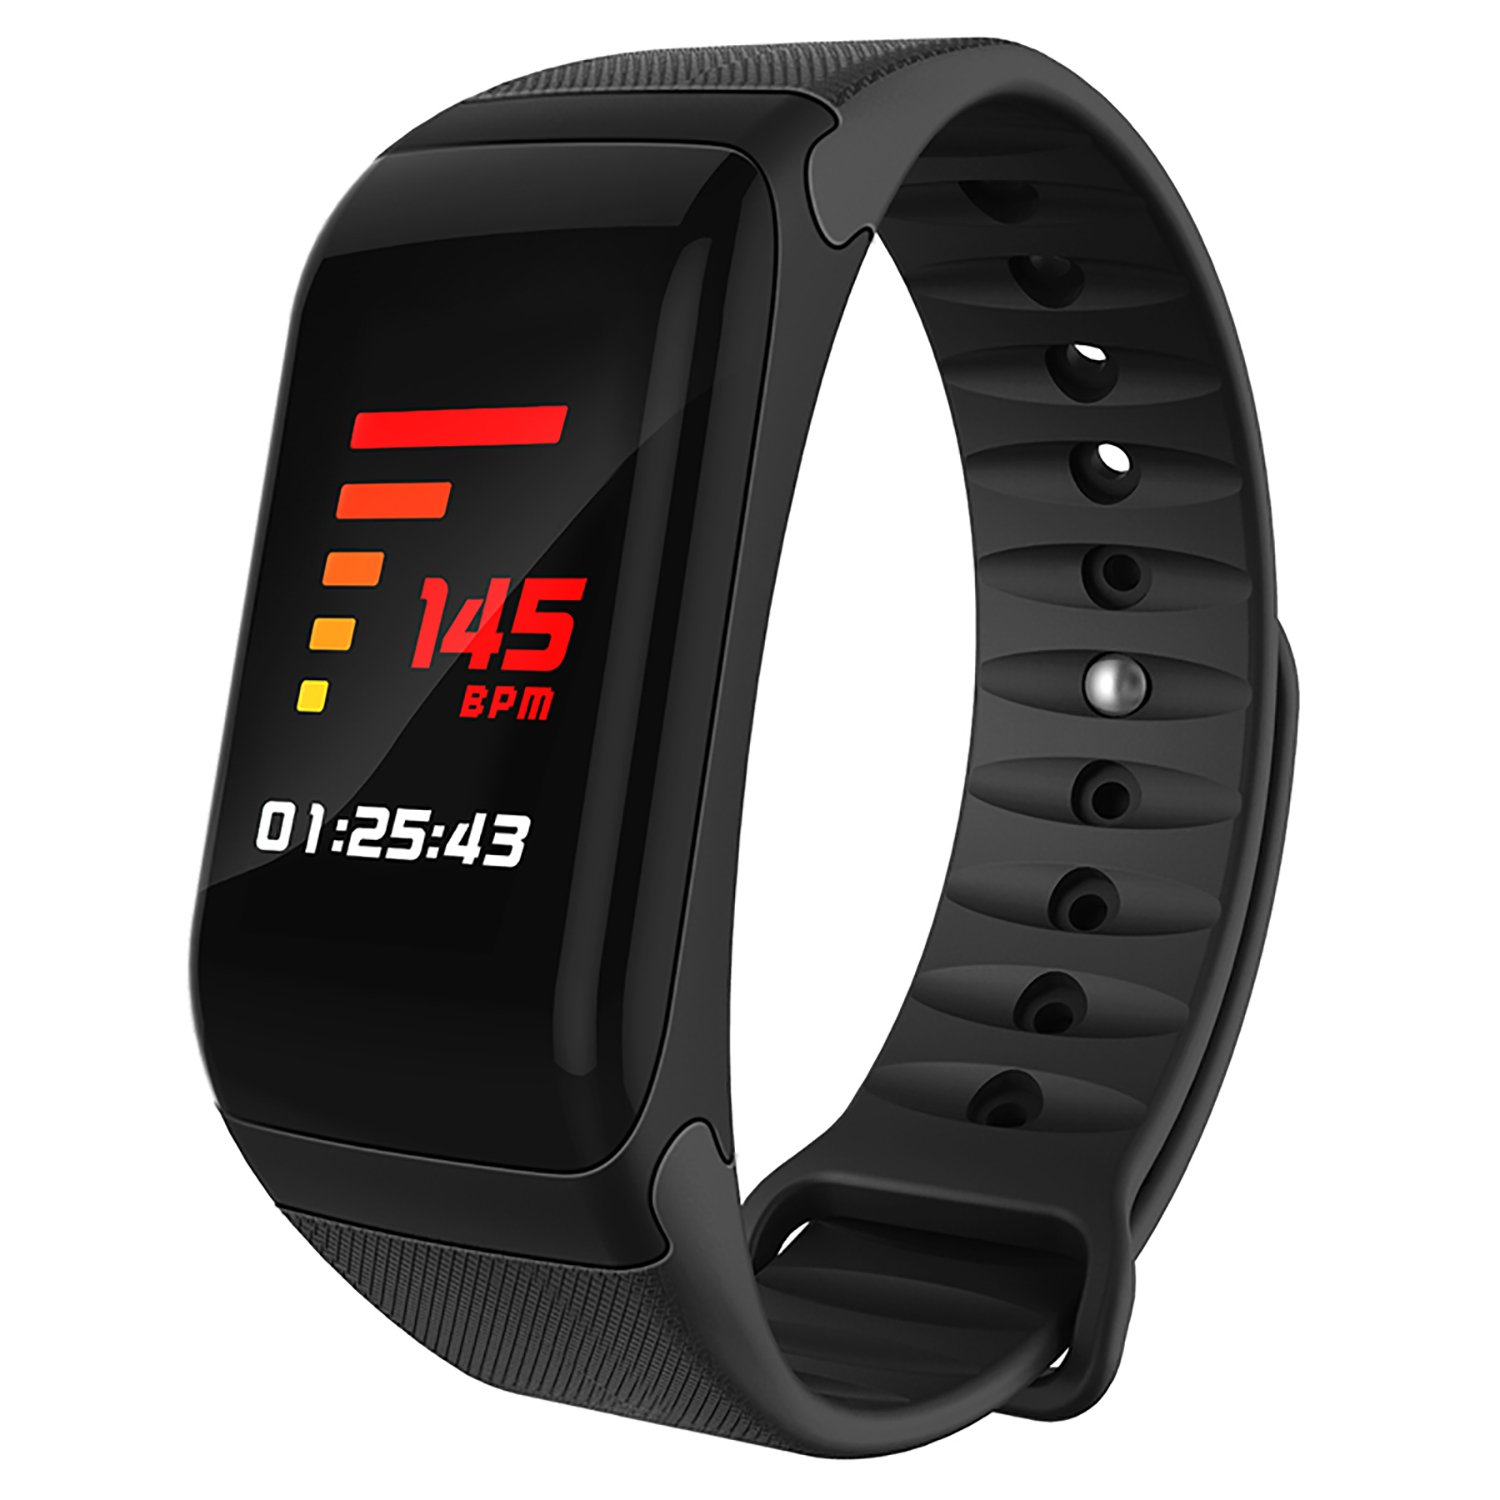 HYON Activity Tracker Large Screen Fitness Watch Smart Band Heart Rate Blood Pressure SpO2 Sleep Monitor Step Counter Pedometer Calorie Distance Measure Call Message Alert Remote Shutter Music Control